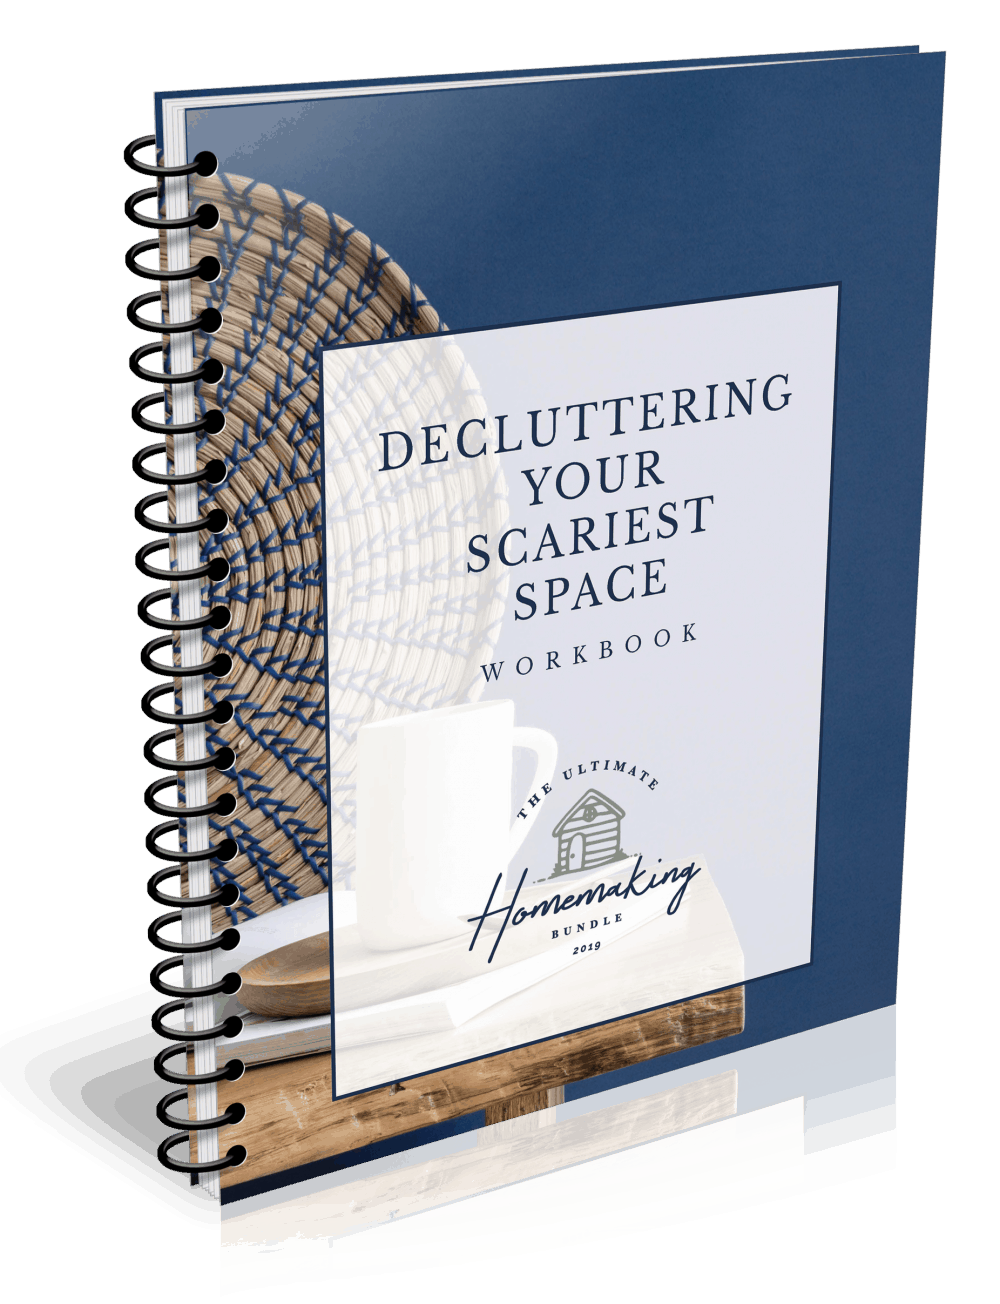 Decluttering your scariest space.